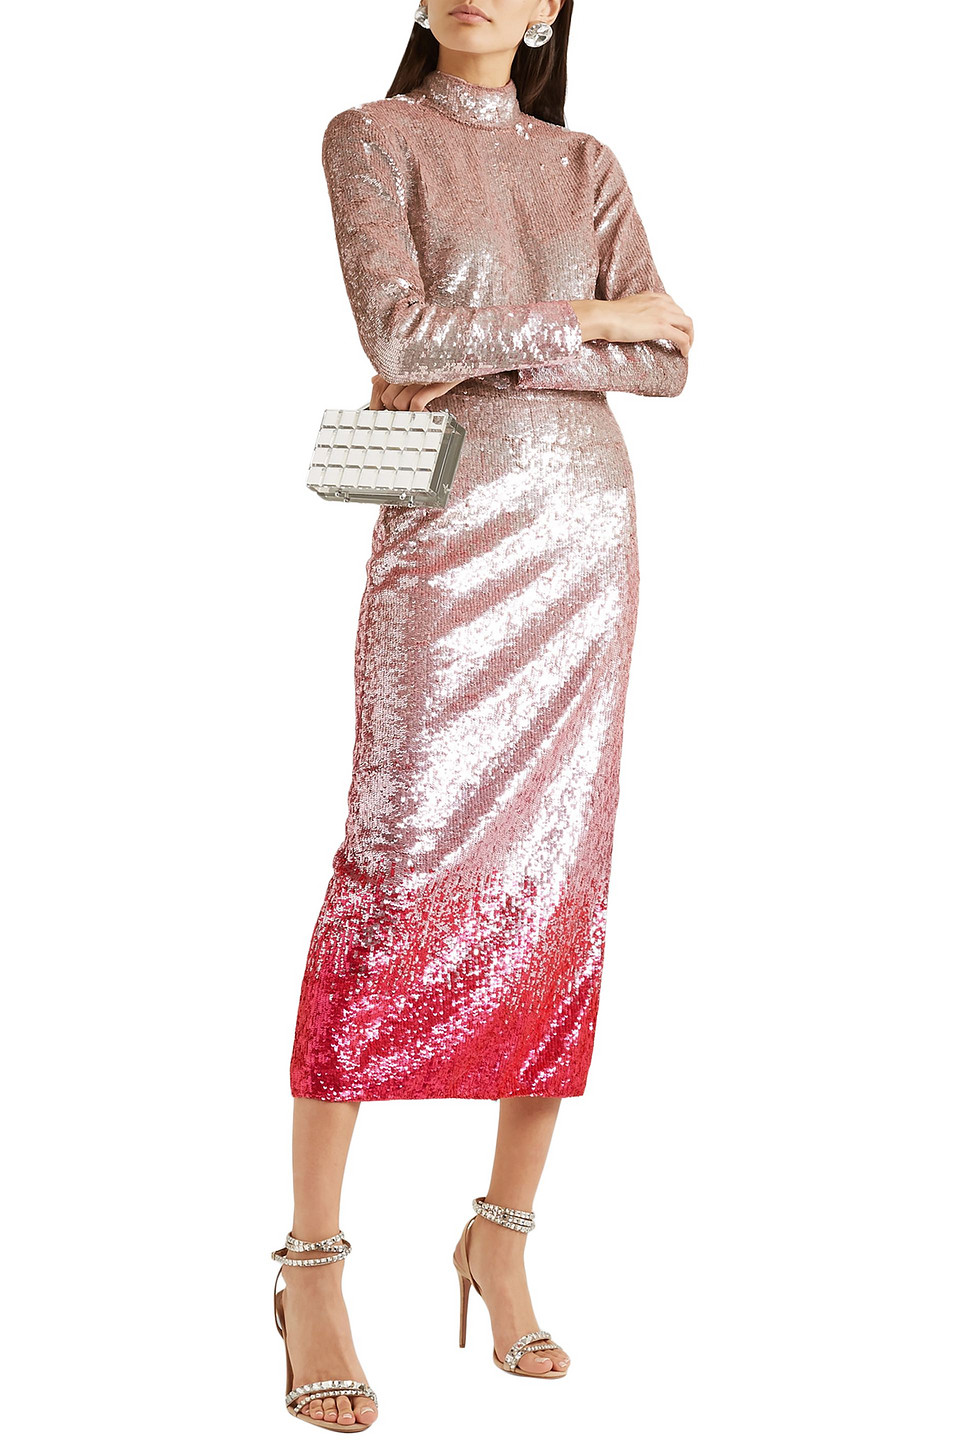 Temperley London | Temperley London Woman Opia Open-back Degrade Sequined Stretch-crepe Midi Dress Pastel Pink | Clouty